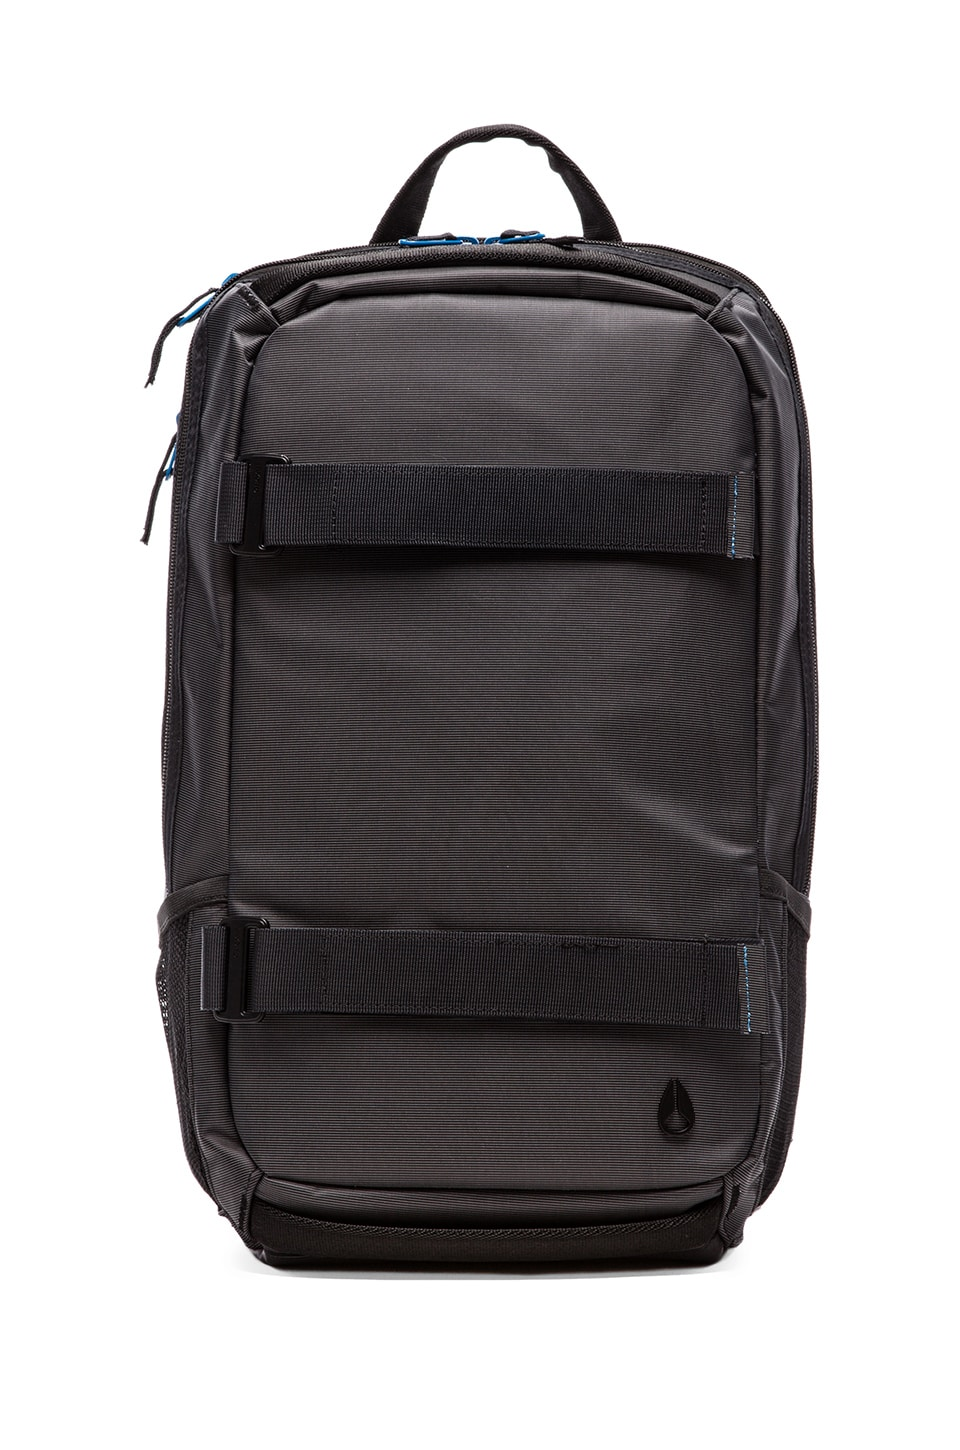 Nixon Sonar Backpack in Black/ Blue